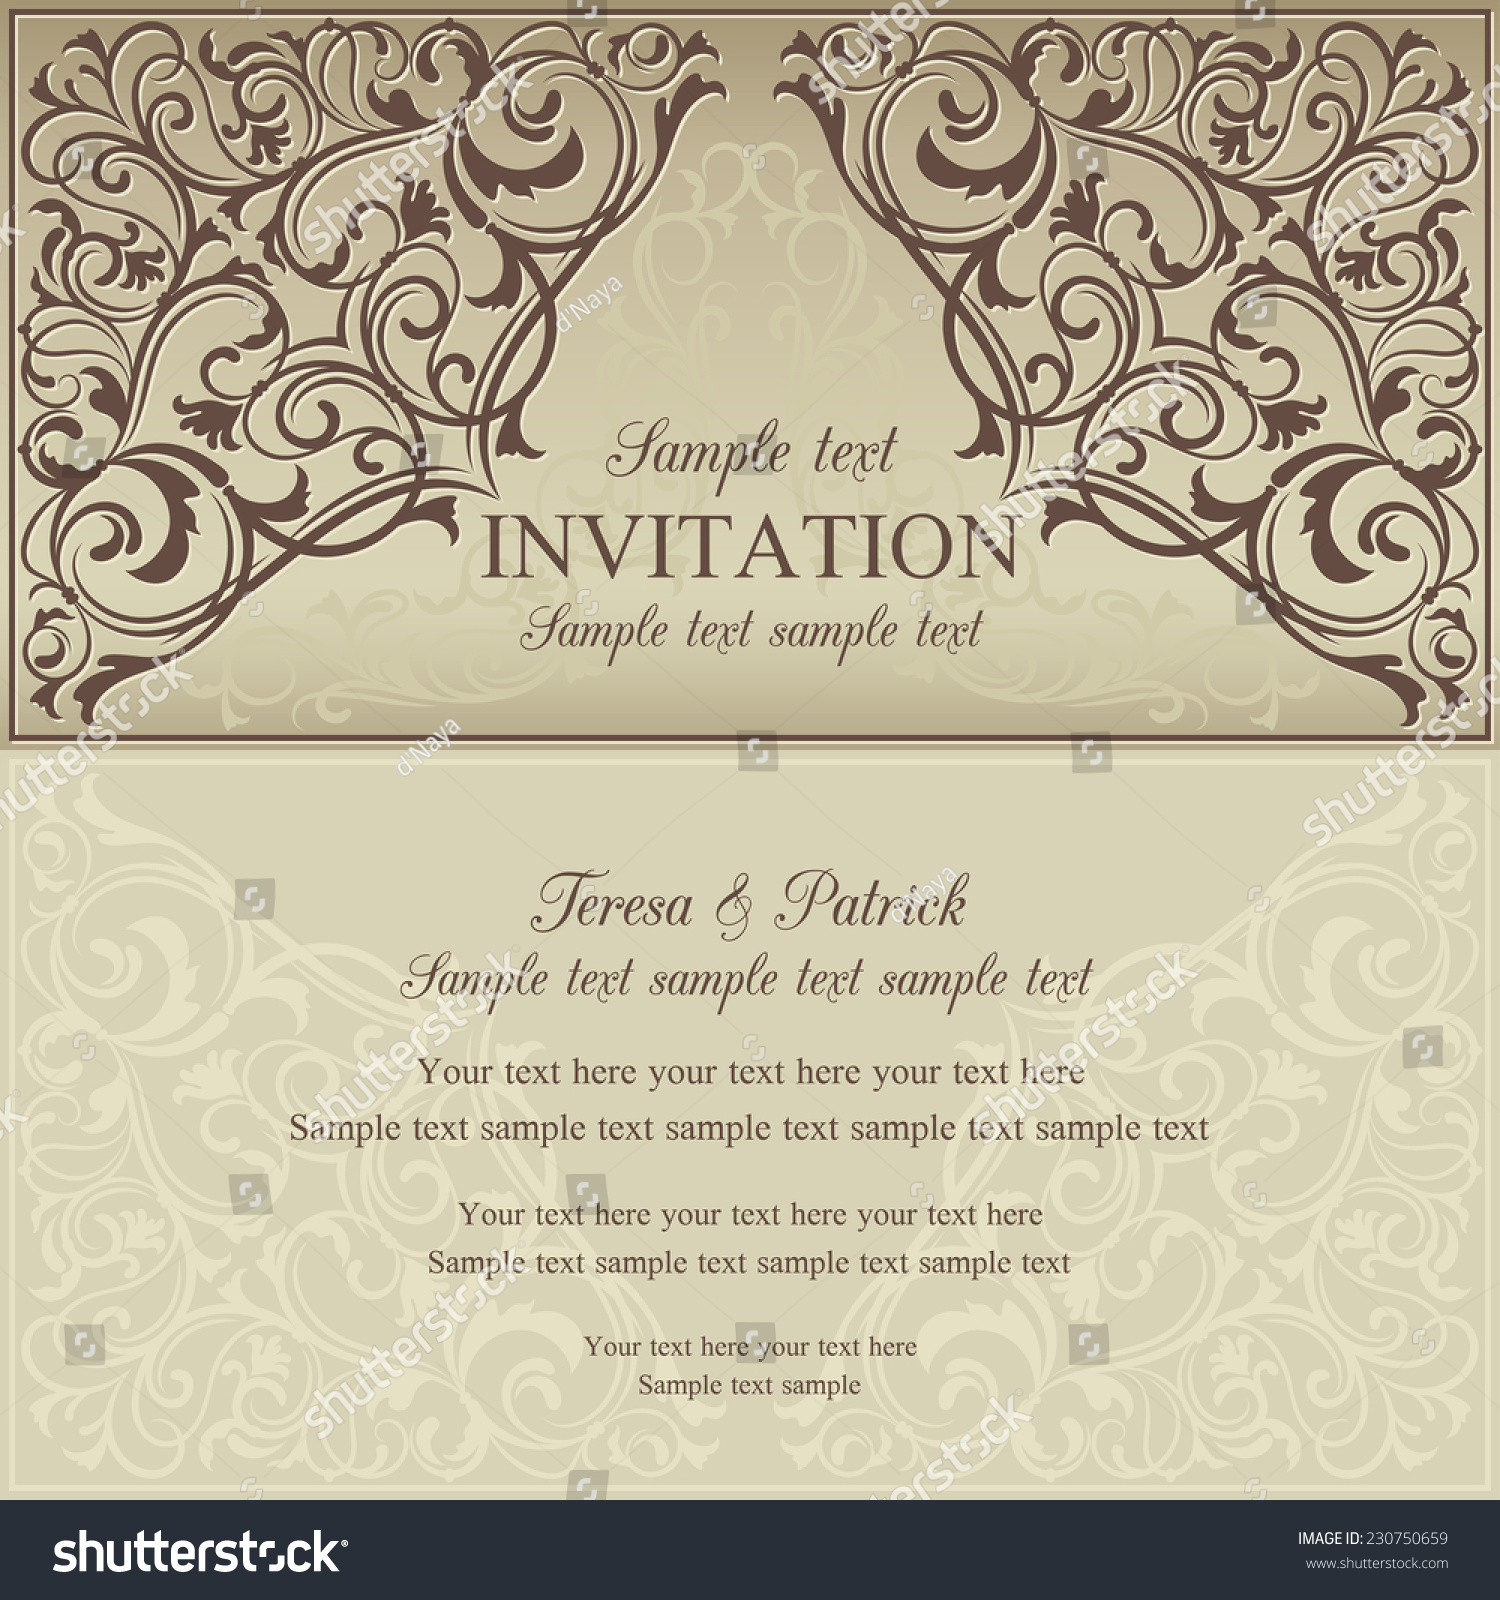 Orient East Invitation Card Oldfashioned Style Stock Vector (Royalty ...